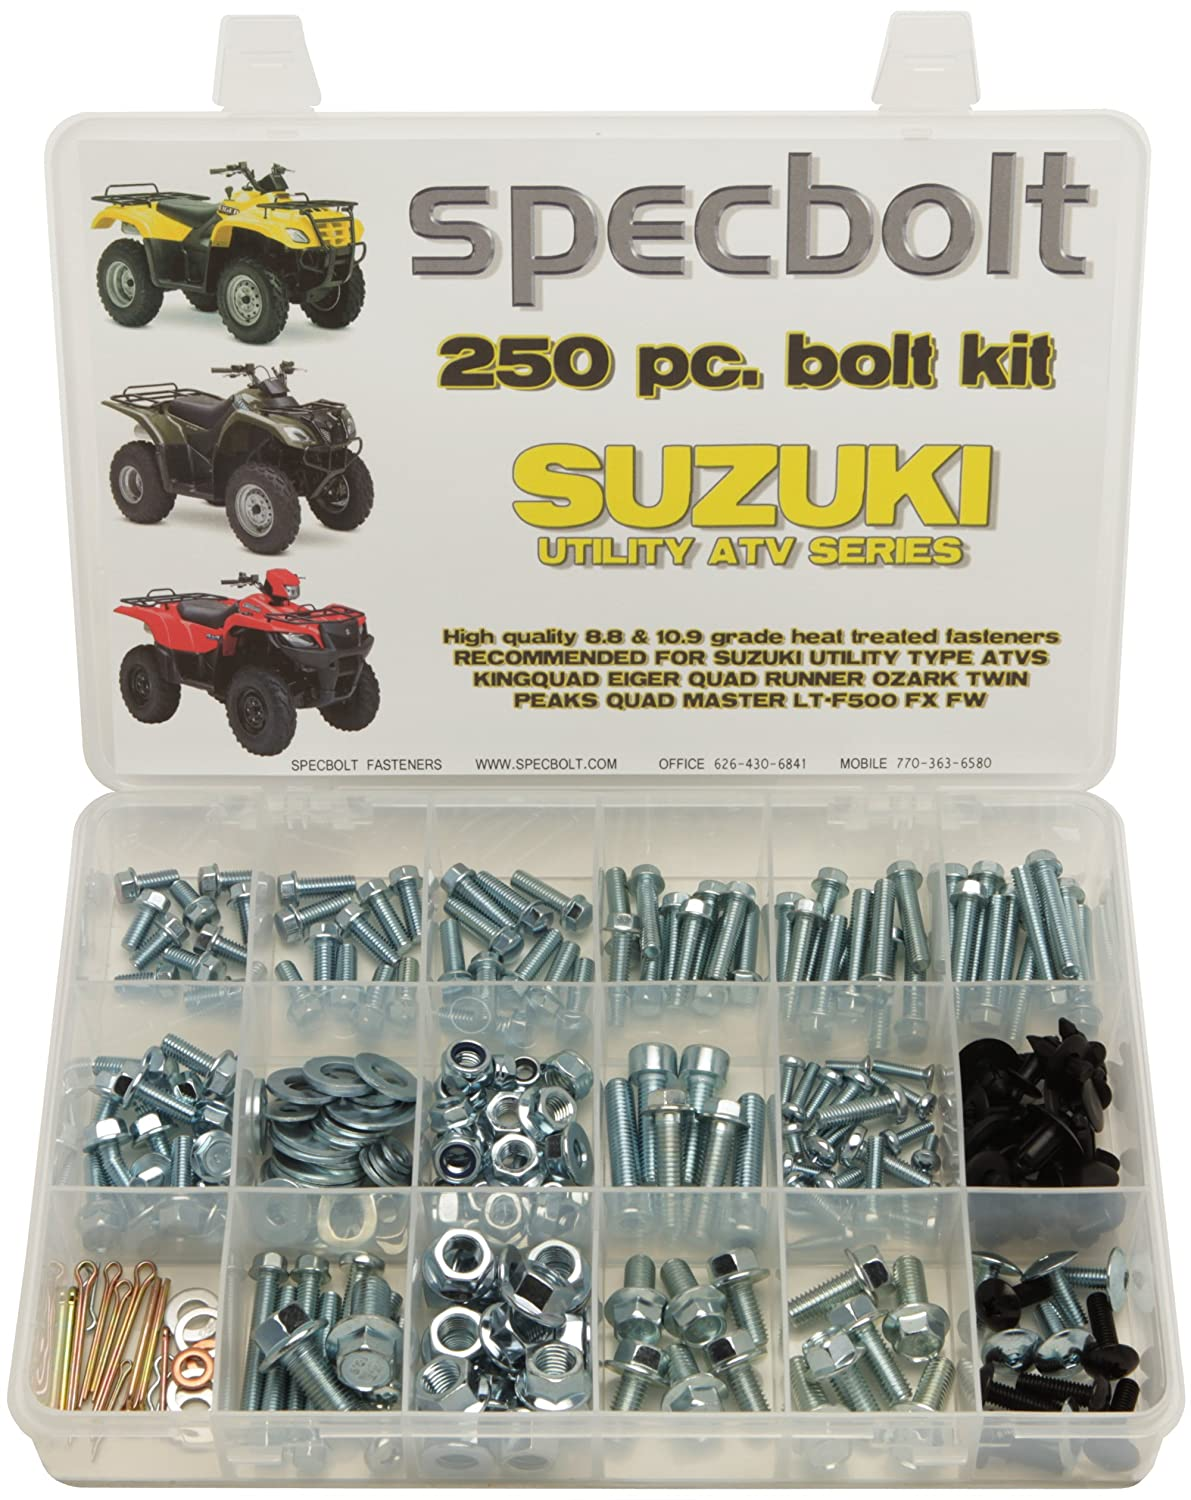 Amazon.com: 250pc Specbolt Suzuki Utility ATV Bolt Kit for Maintenance &  Restoration OEM Spec Fasteners Quad for KingQuad Eiger Quad Runner Ozark  Twin Peaks ...